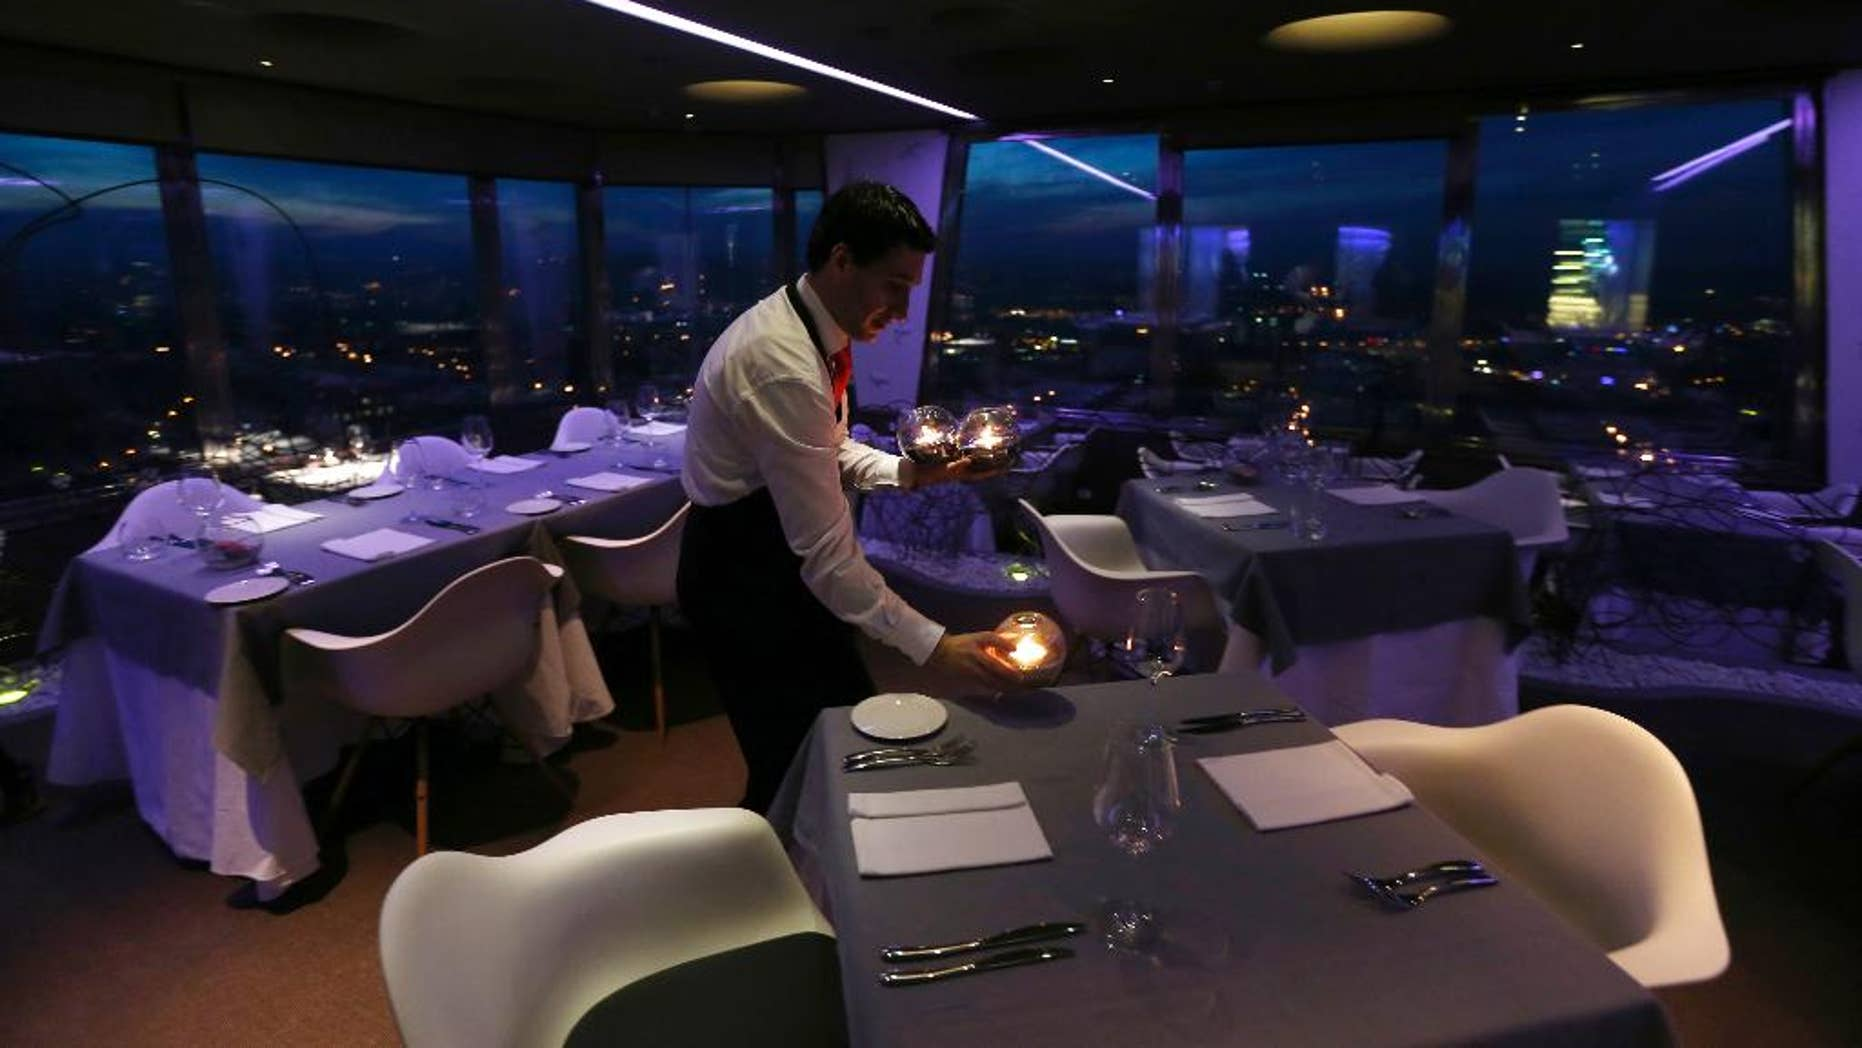 FILE- In this March 6, 2013 file photo, a waiter sets a candle on a table in a restaurant at the Zizkov television tower in Prague, Czech Republic. The Czech Republic has launched a new system to increase tax revenue by requiring bars and restaurants to report their sales online.   (AP Photo/Petr David Josek)